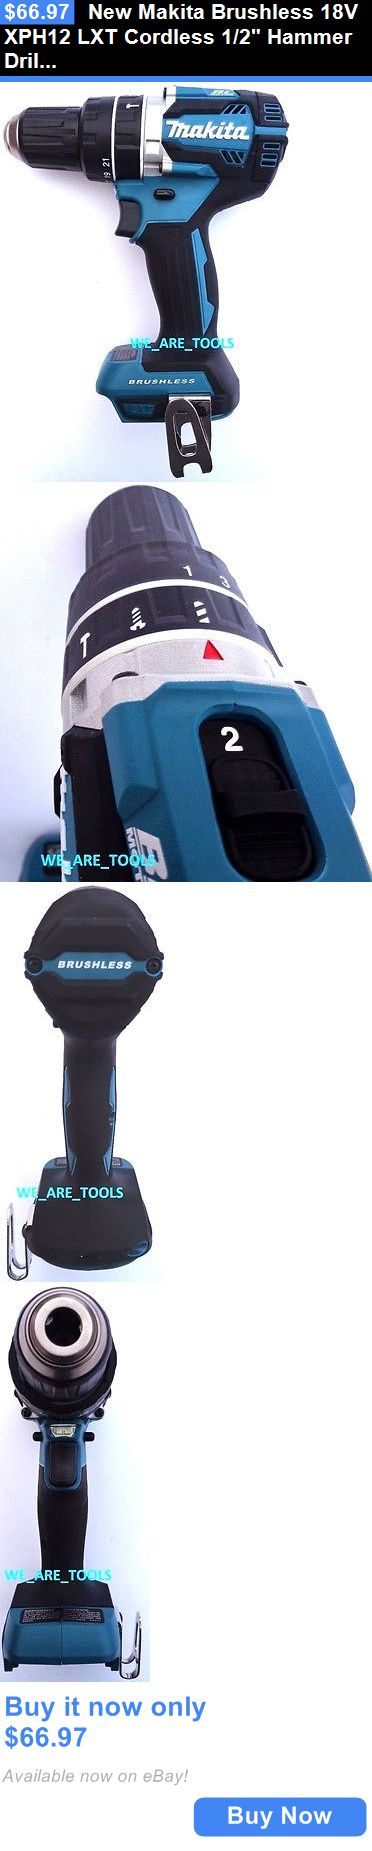 tools: New Makita Brushless 18V Xph12 Lxt Cordless 1/2 Hammer Drill 18 Volt Li-Ion BUY IT NOW ONLY: $66.97